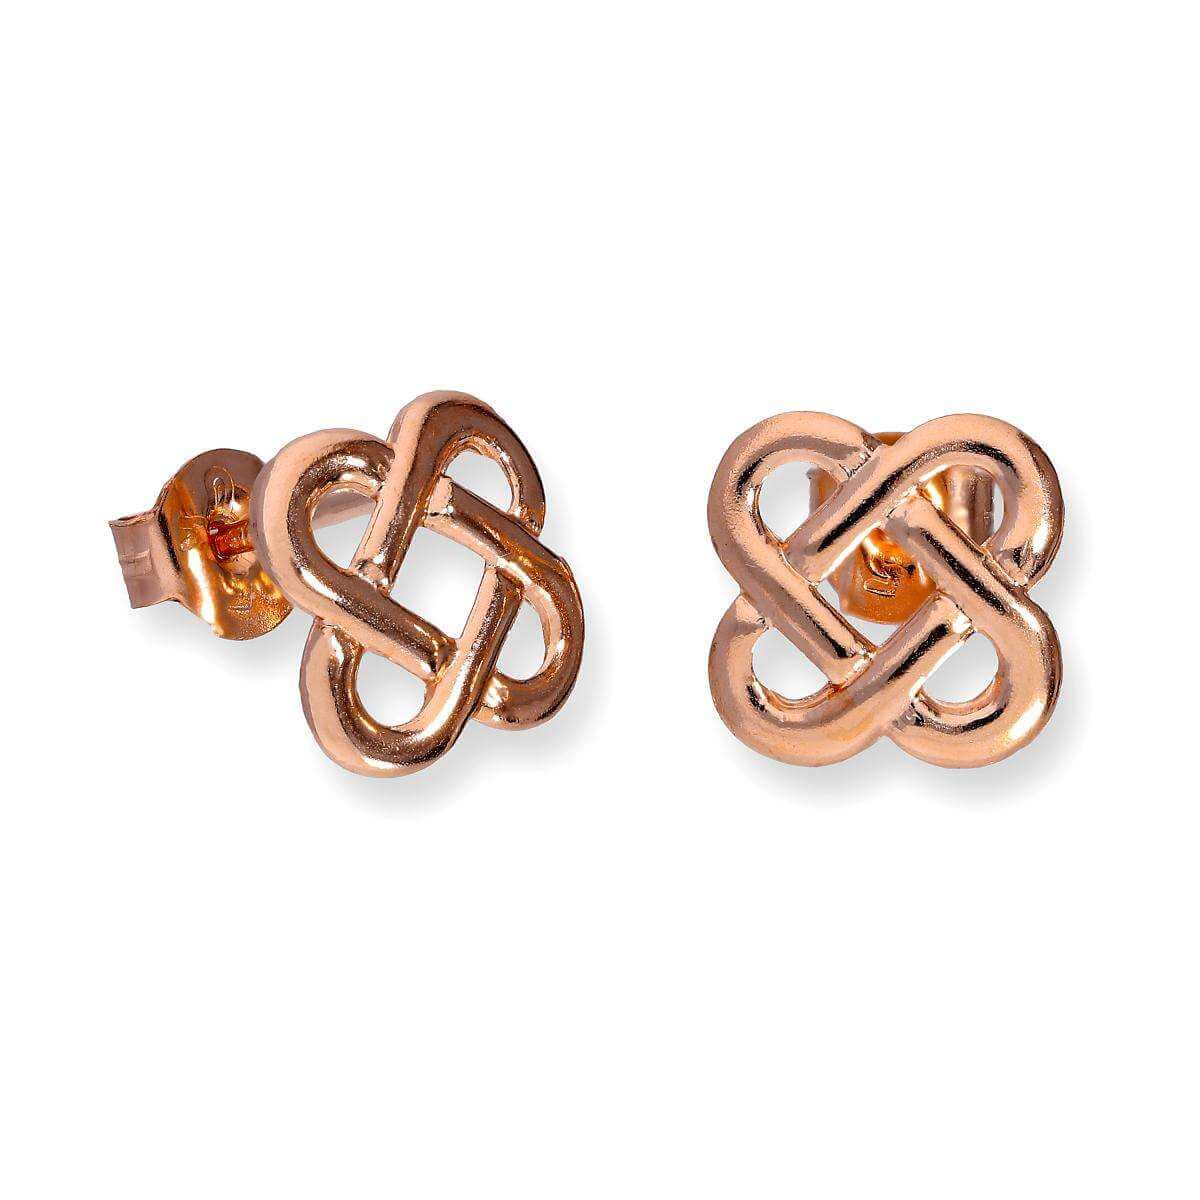 9ct Rose Gold Flat Celtic Knot Stud Earrings